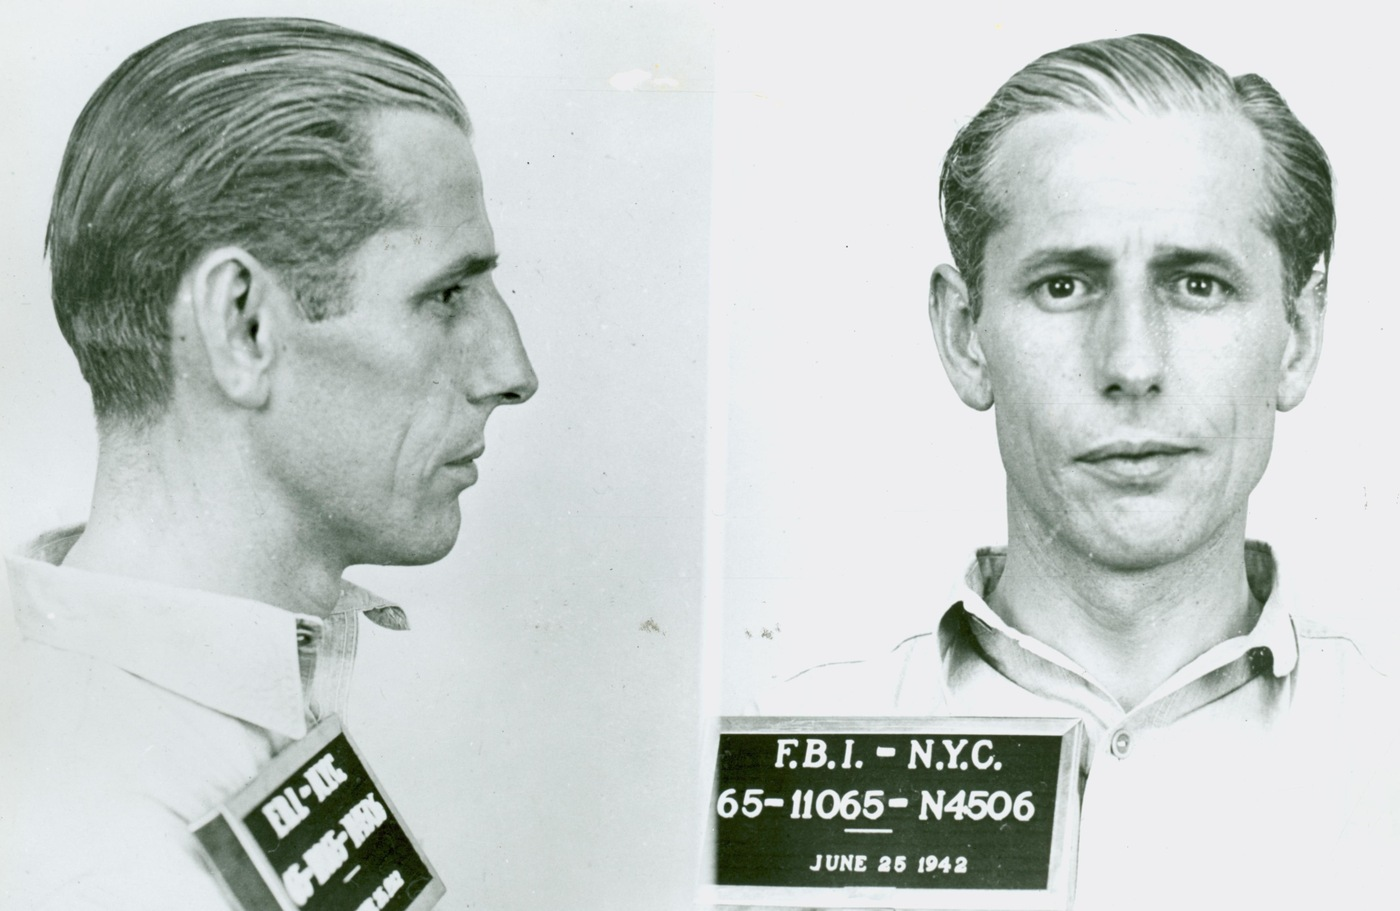 A June 1942 mug shot of George John Dasch, Nazi saboteur, who was offloaded by a u-boat at Amangansett, Long Island, New York. He turned himself in to the New York FBI, was tried, sentenced to 30 years, and ultimately pardoned and deported to Germany.